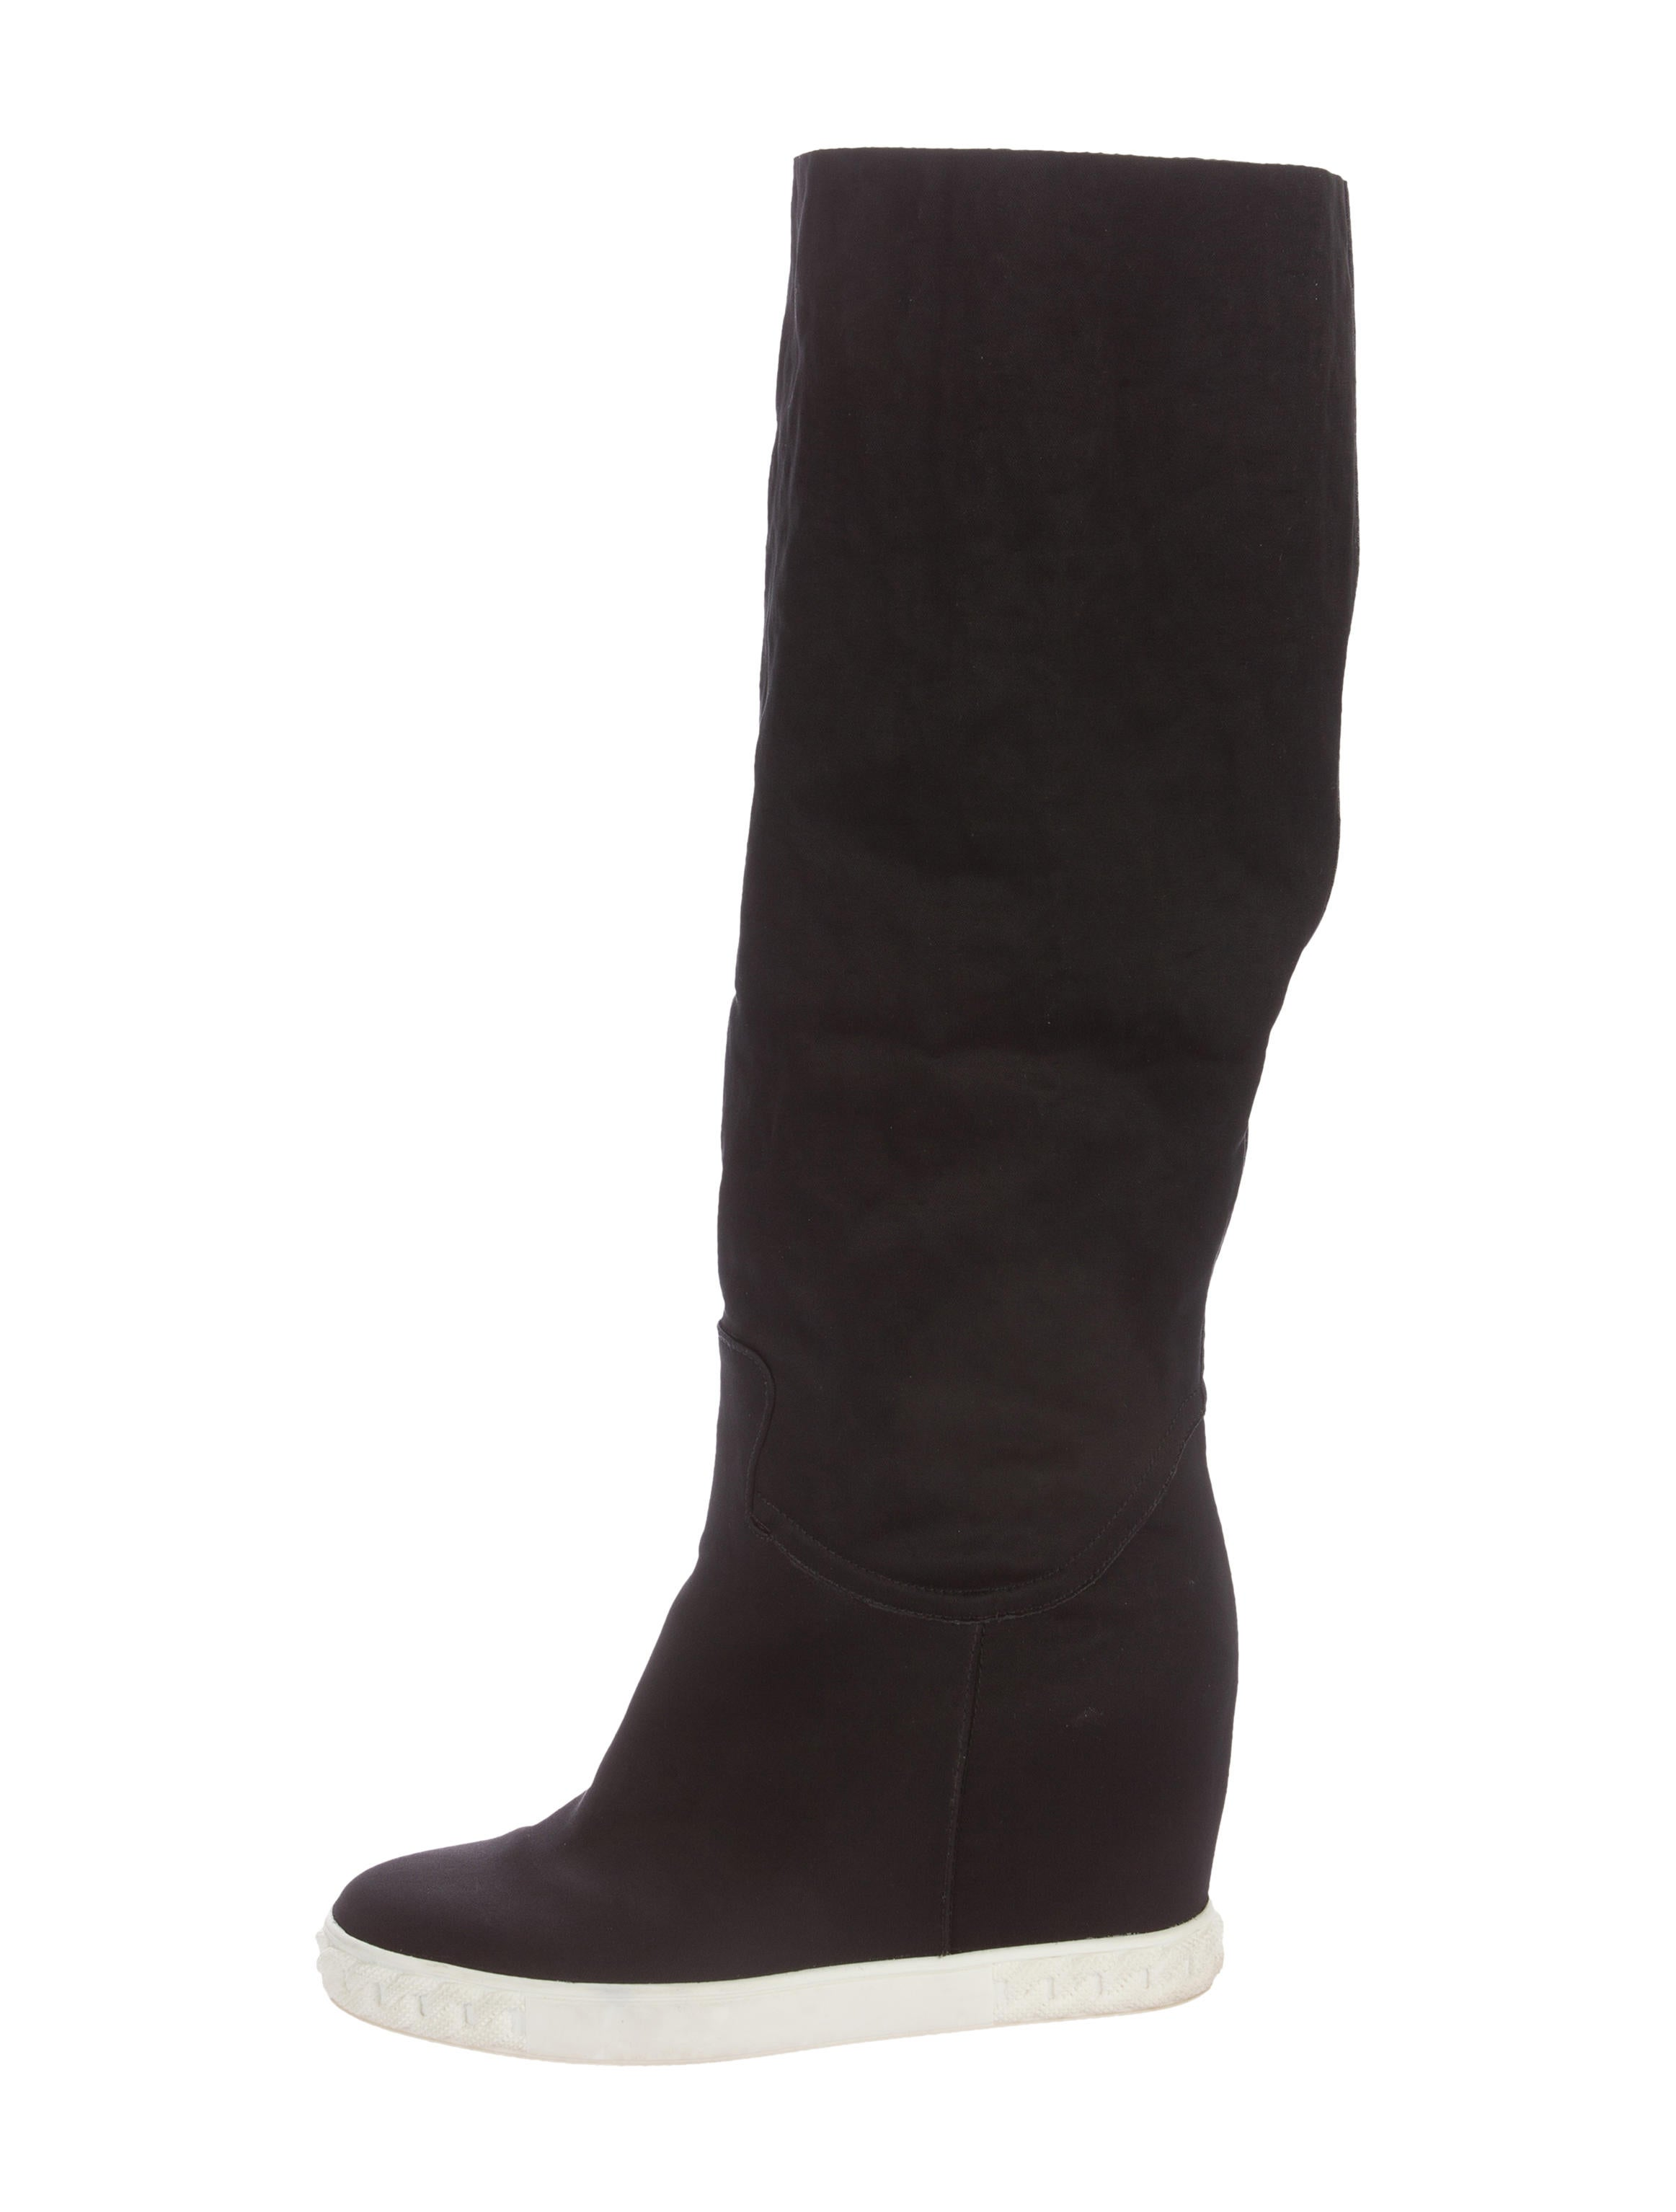 casadei foldover knee high boots shoes cei22844 the